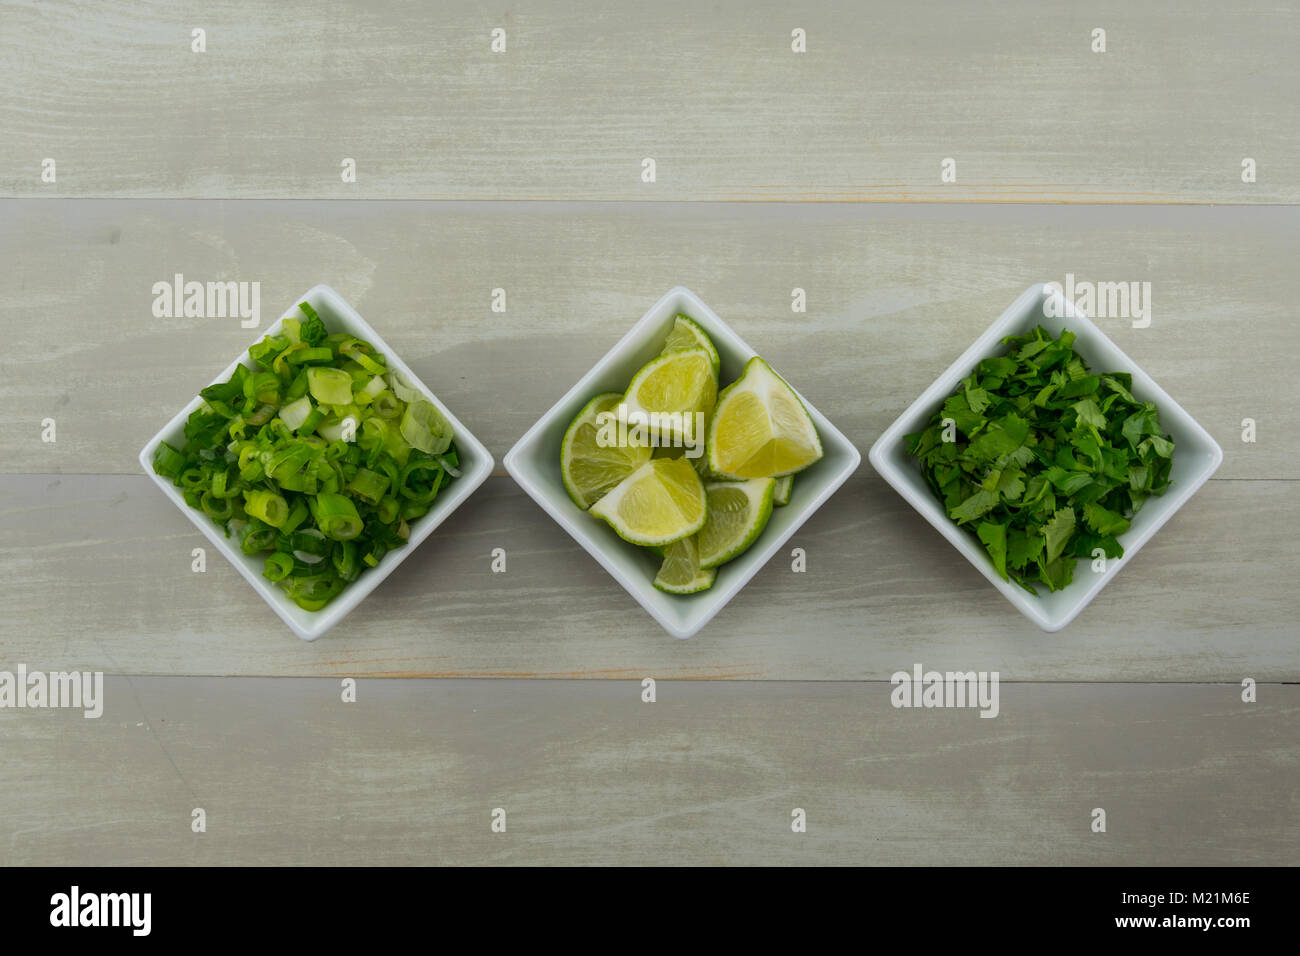 Row of Onion Lime and Cilantro in White Bowls - Stock Image